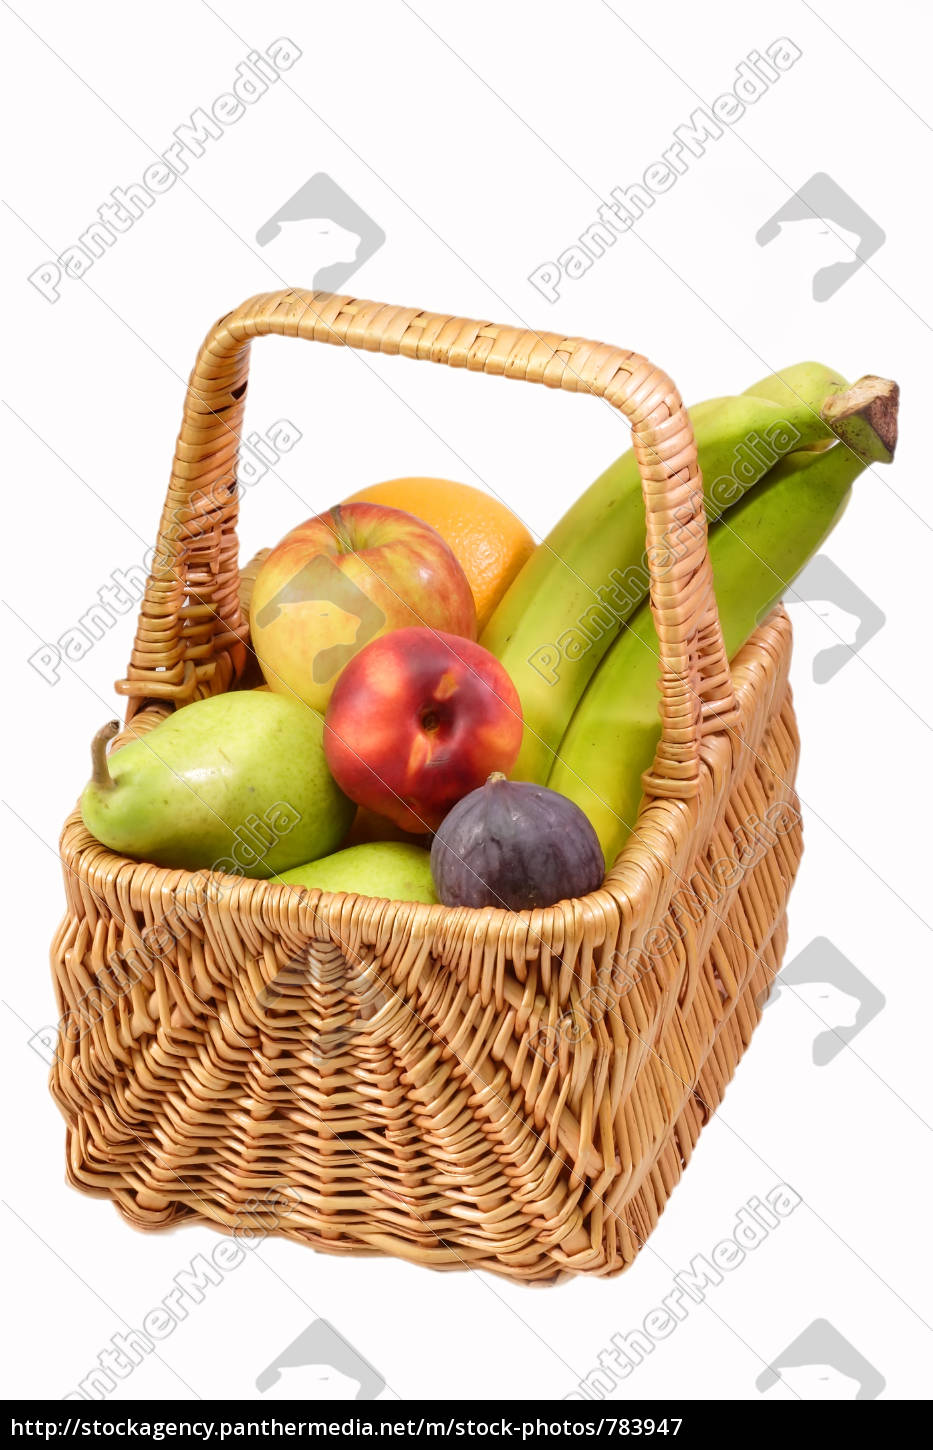 full, fruit, basket - 783947